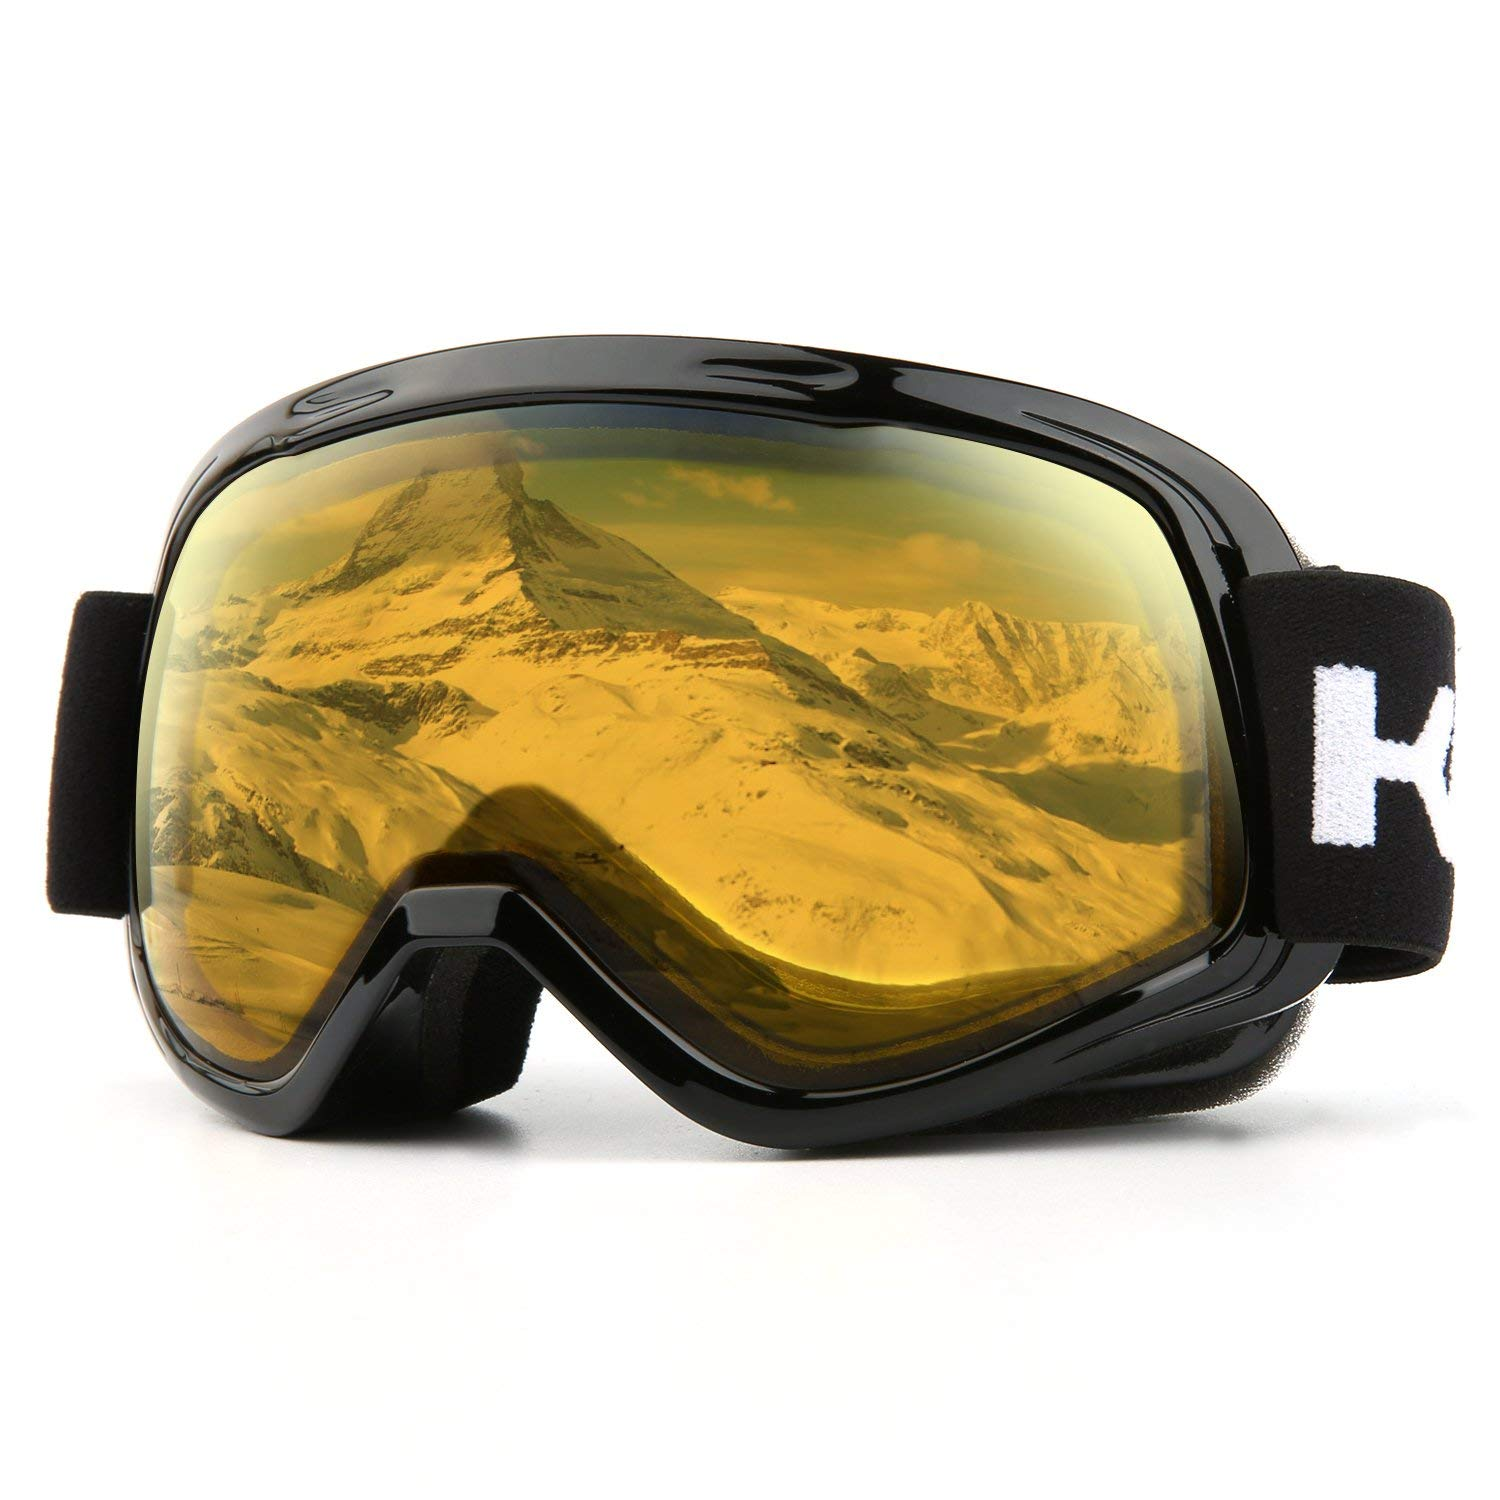 Ski Goggles, Snow Goggles Snowboarding Over Glasses Goggles for Men, Women, Youth or Kids - UV400 Protection and Anti-Fog - Double Grey Spherical Lens for Skating Skiing